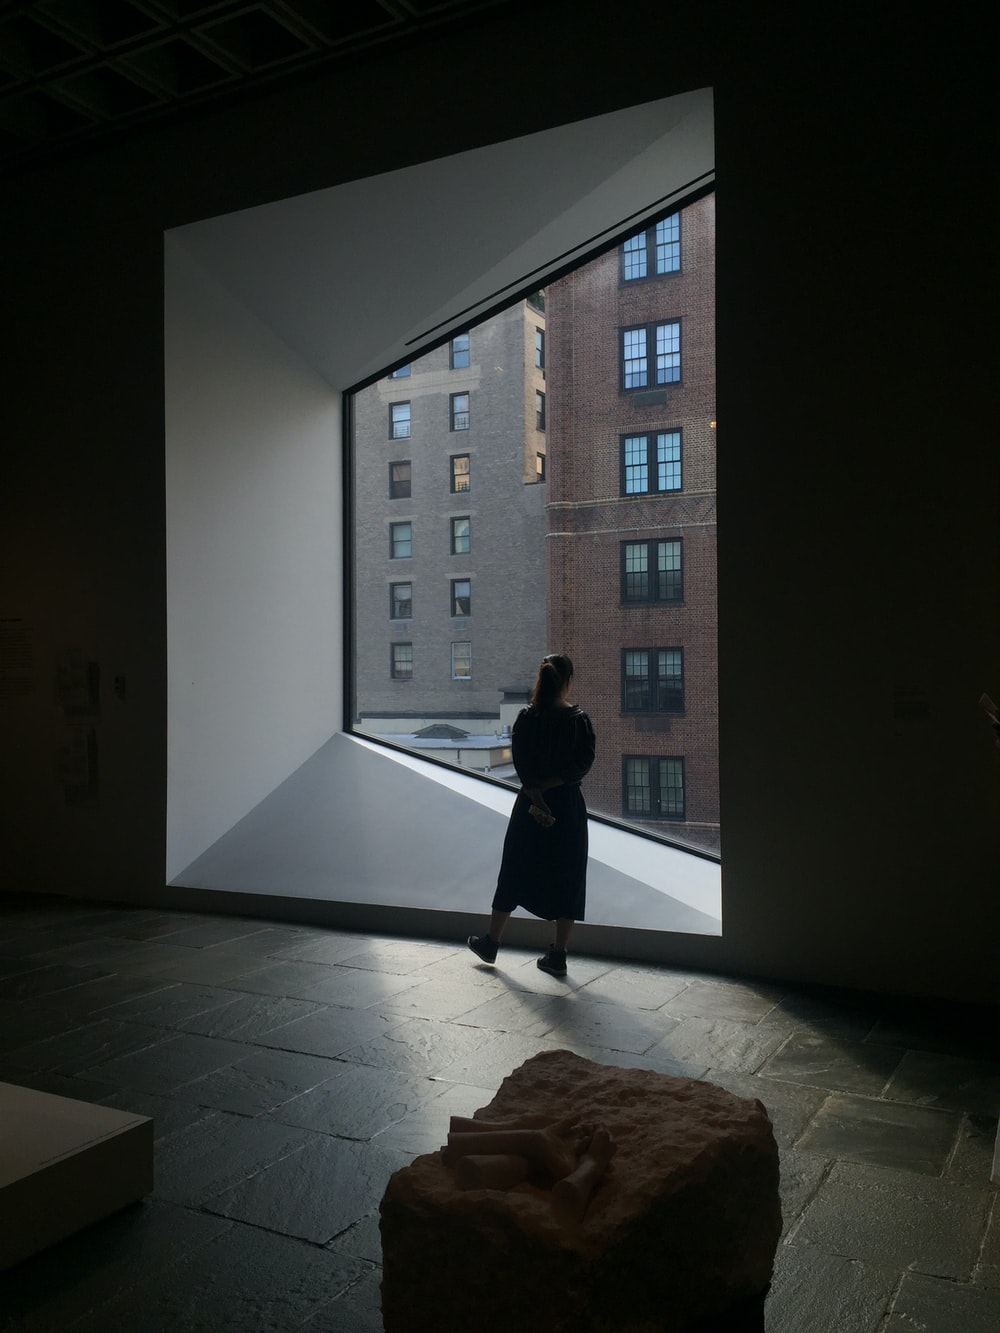 woman standing in front of window glass building